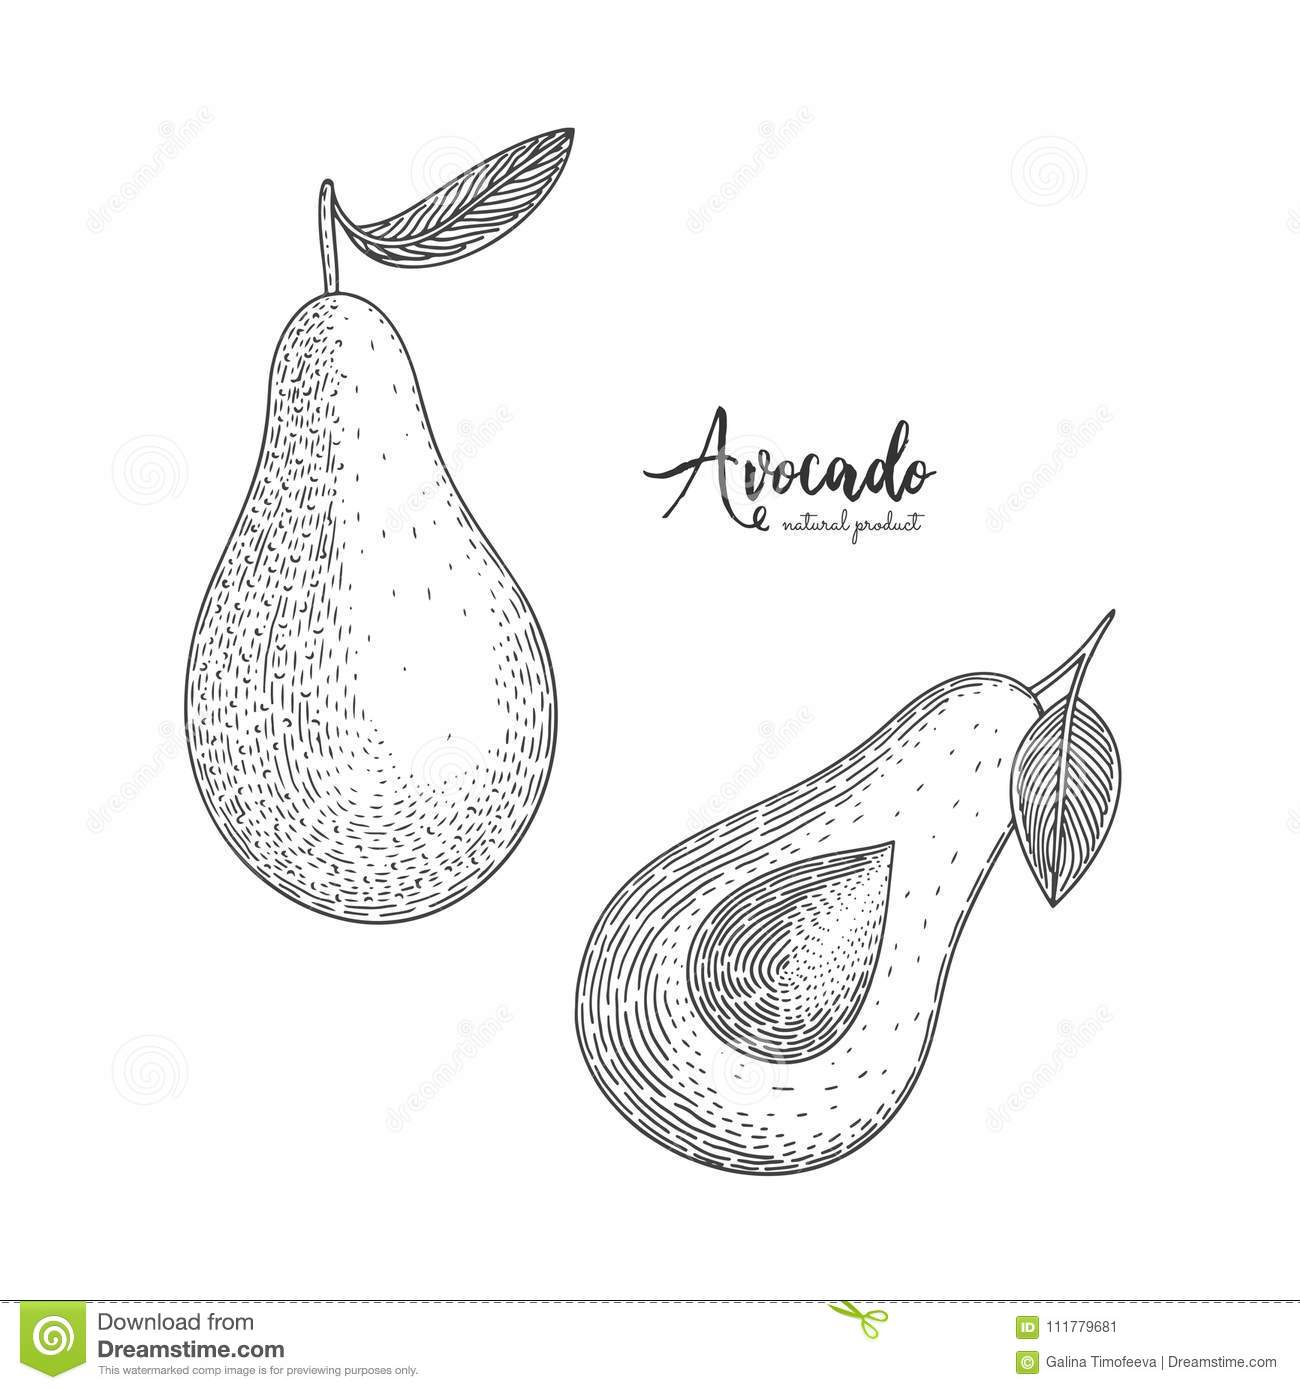 Fruit illustration with avocado in the style of engraving. Detailed vegetarian food. Hand drawn elements for menu